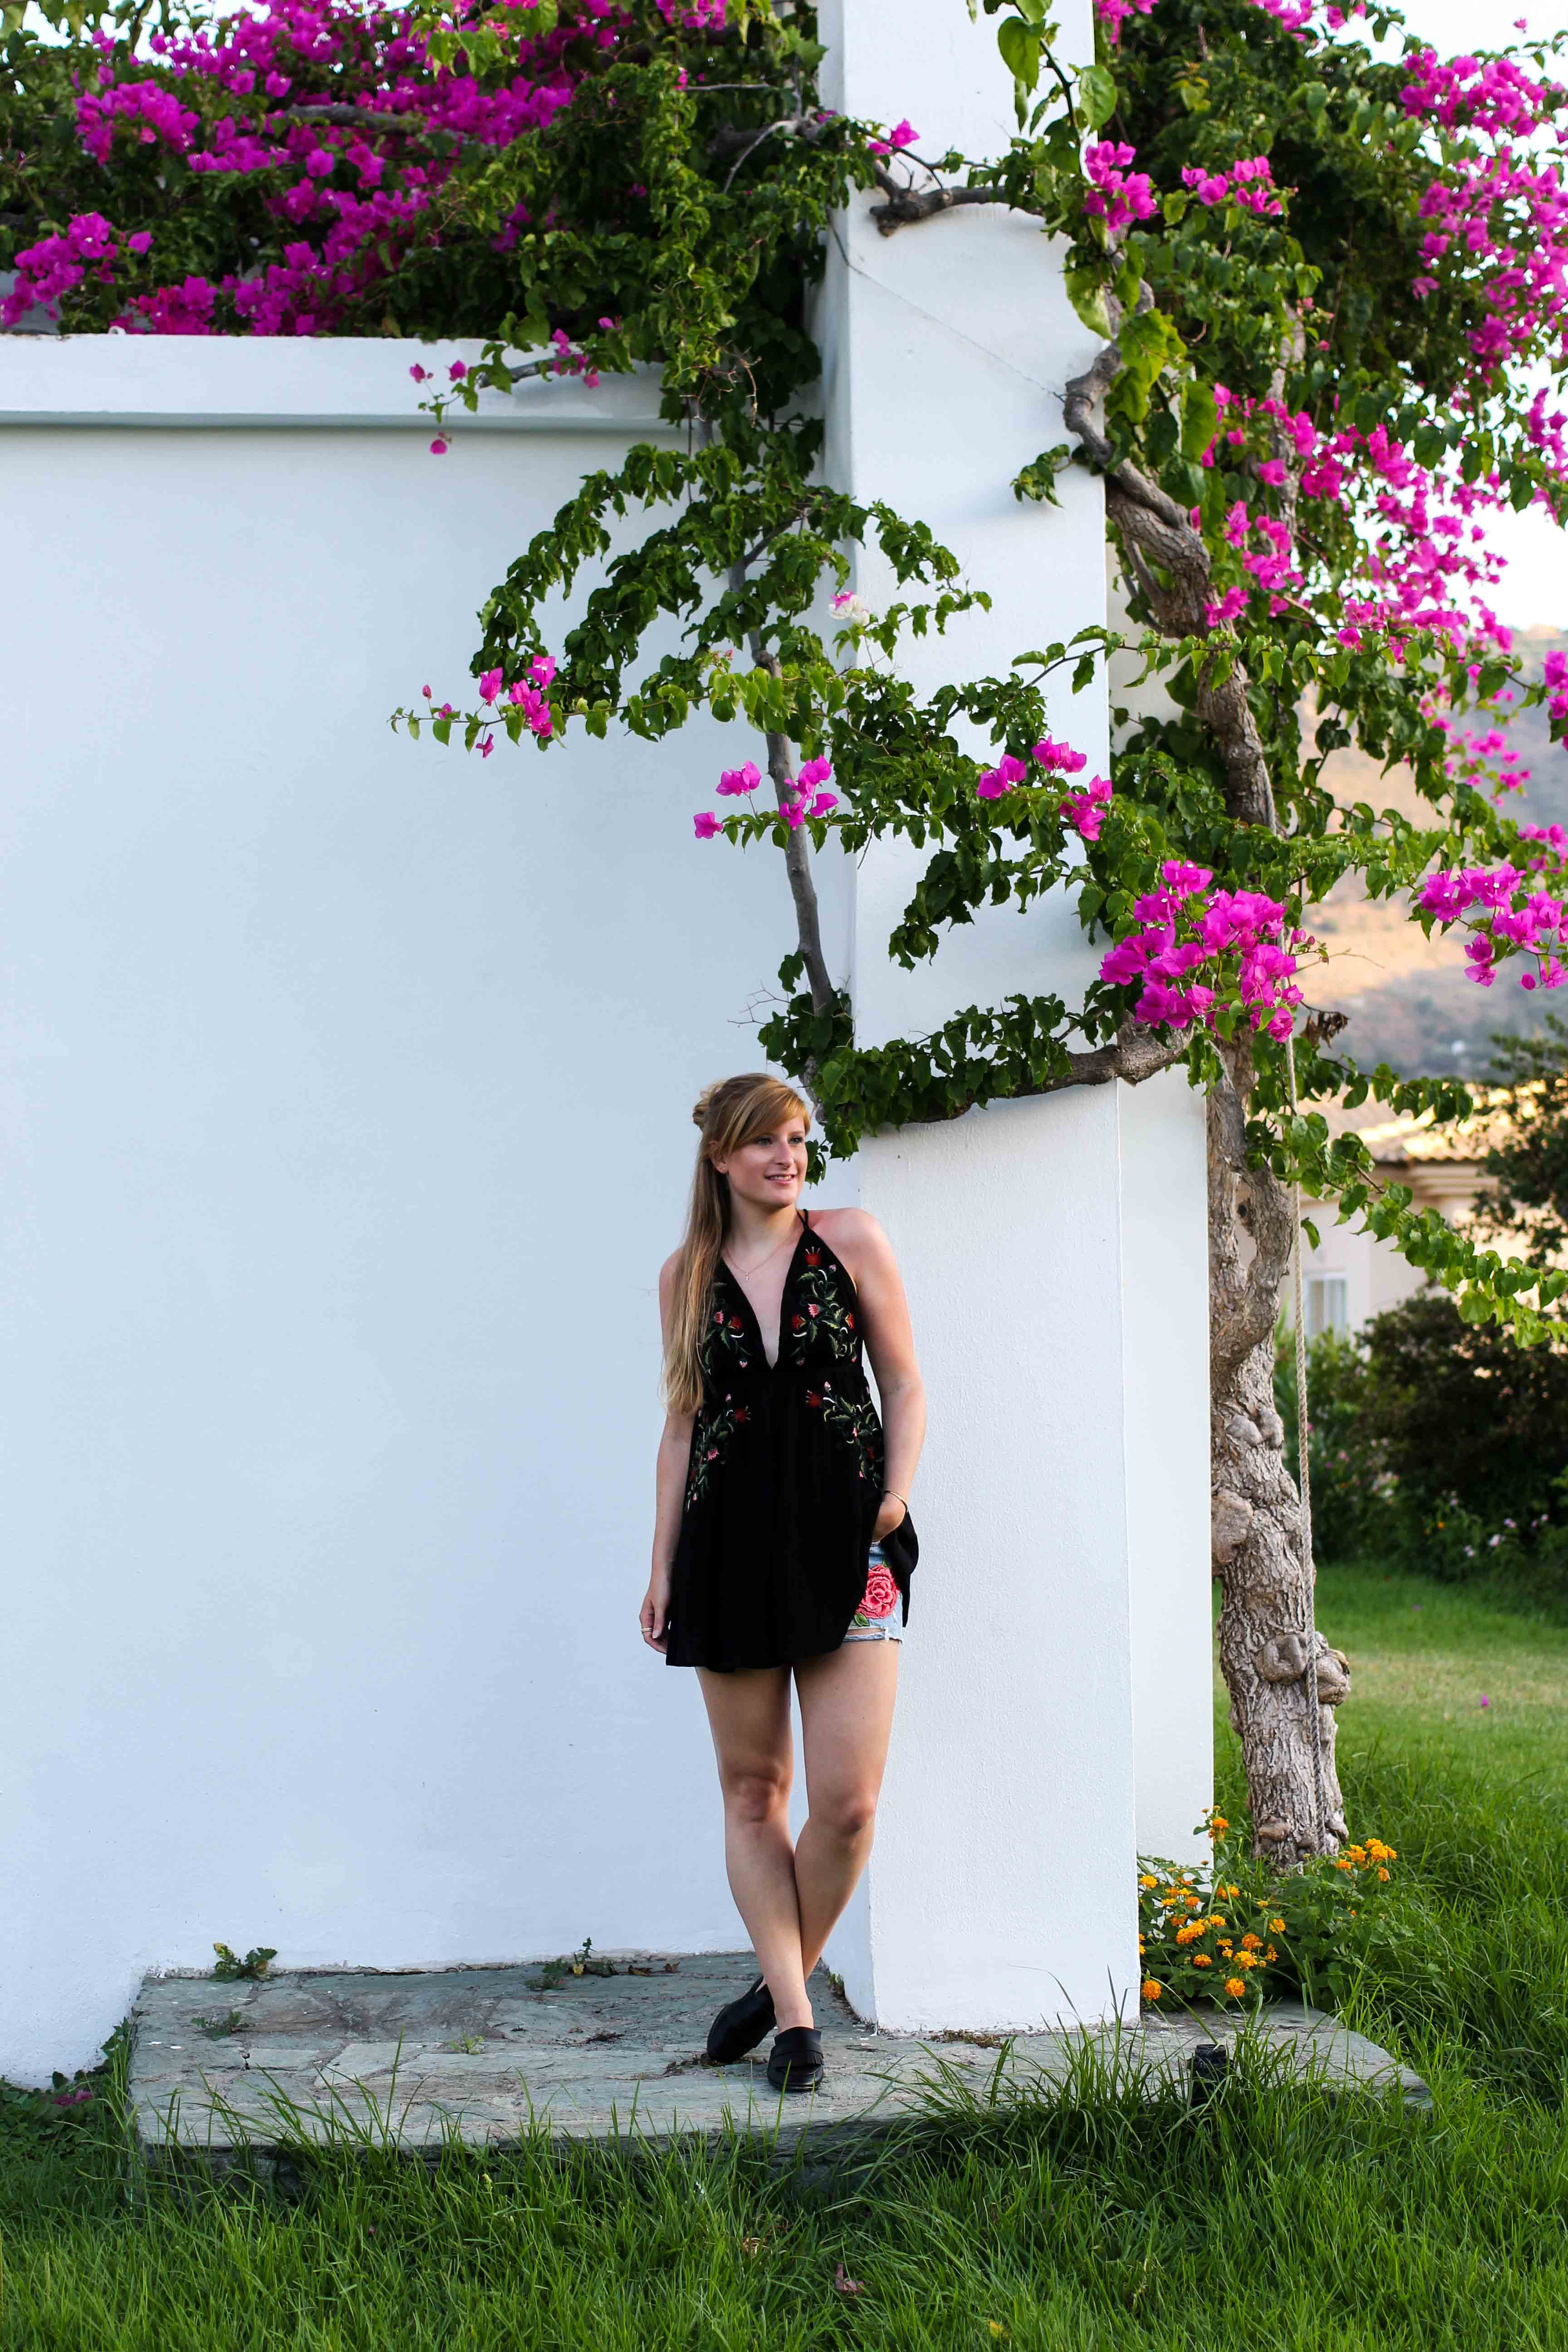 Fashion Blog Travel Blogger BrinisFashionBook Summer Oufit Klippe Out of the Blue Capsis Elite Resort Luxushotel Kreta Griechenland